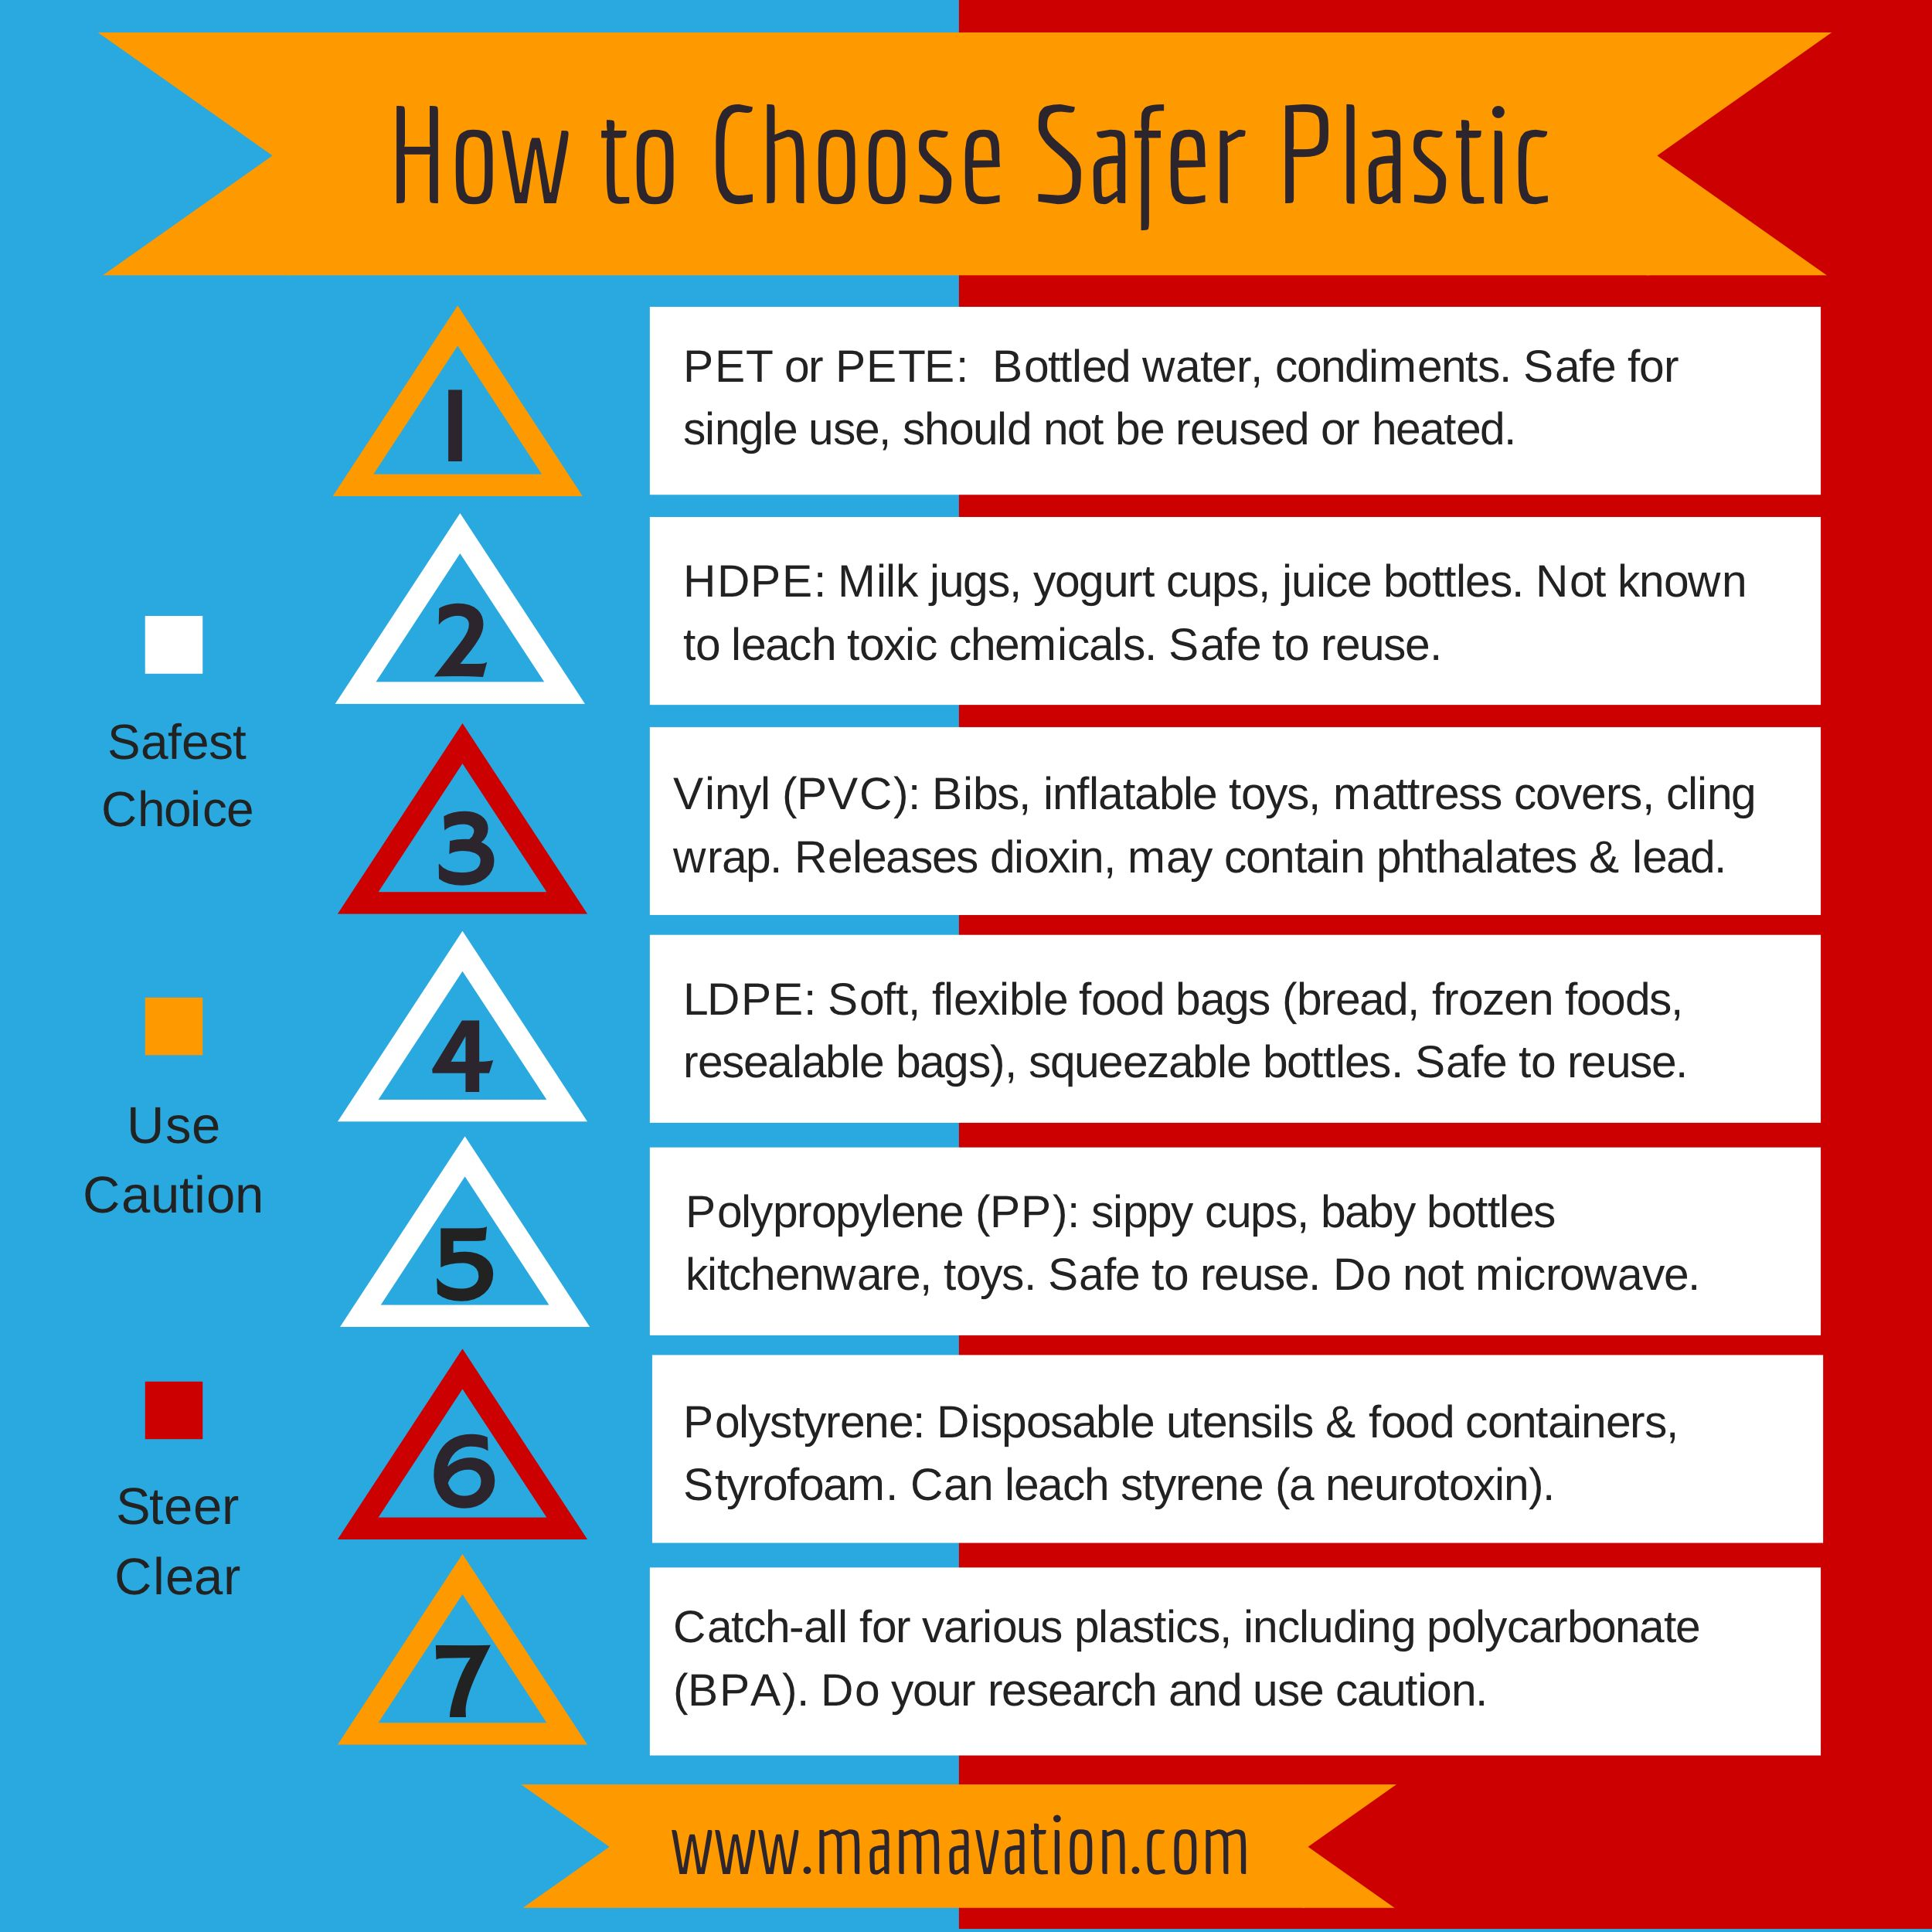 Safer vs. Unsafe Plastics: Which Plastic Should Moms ...